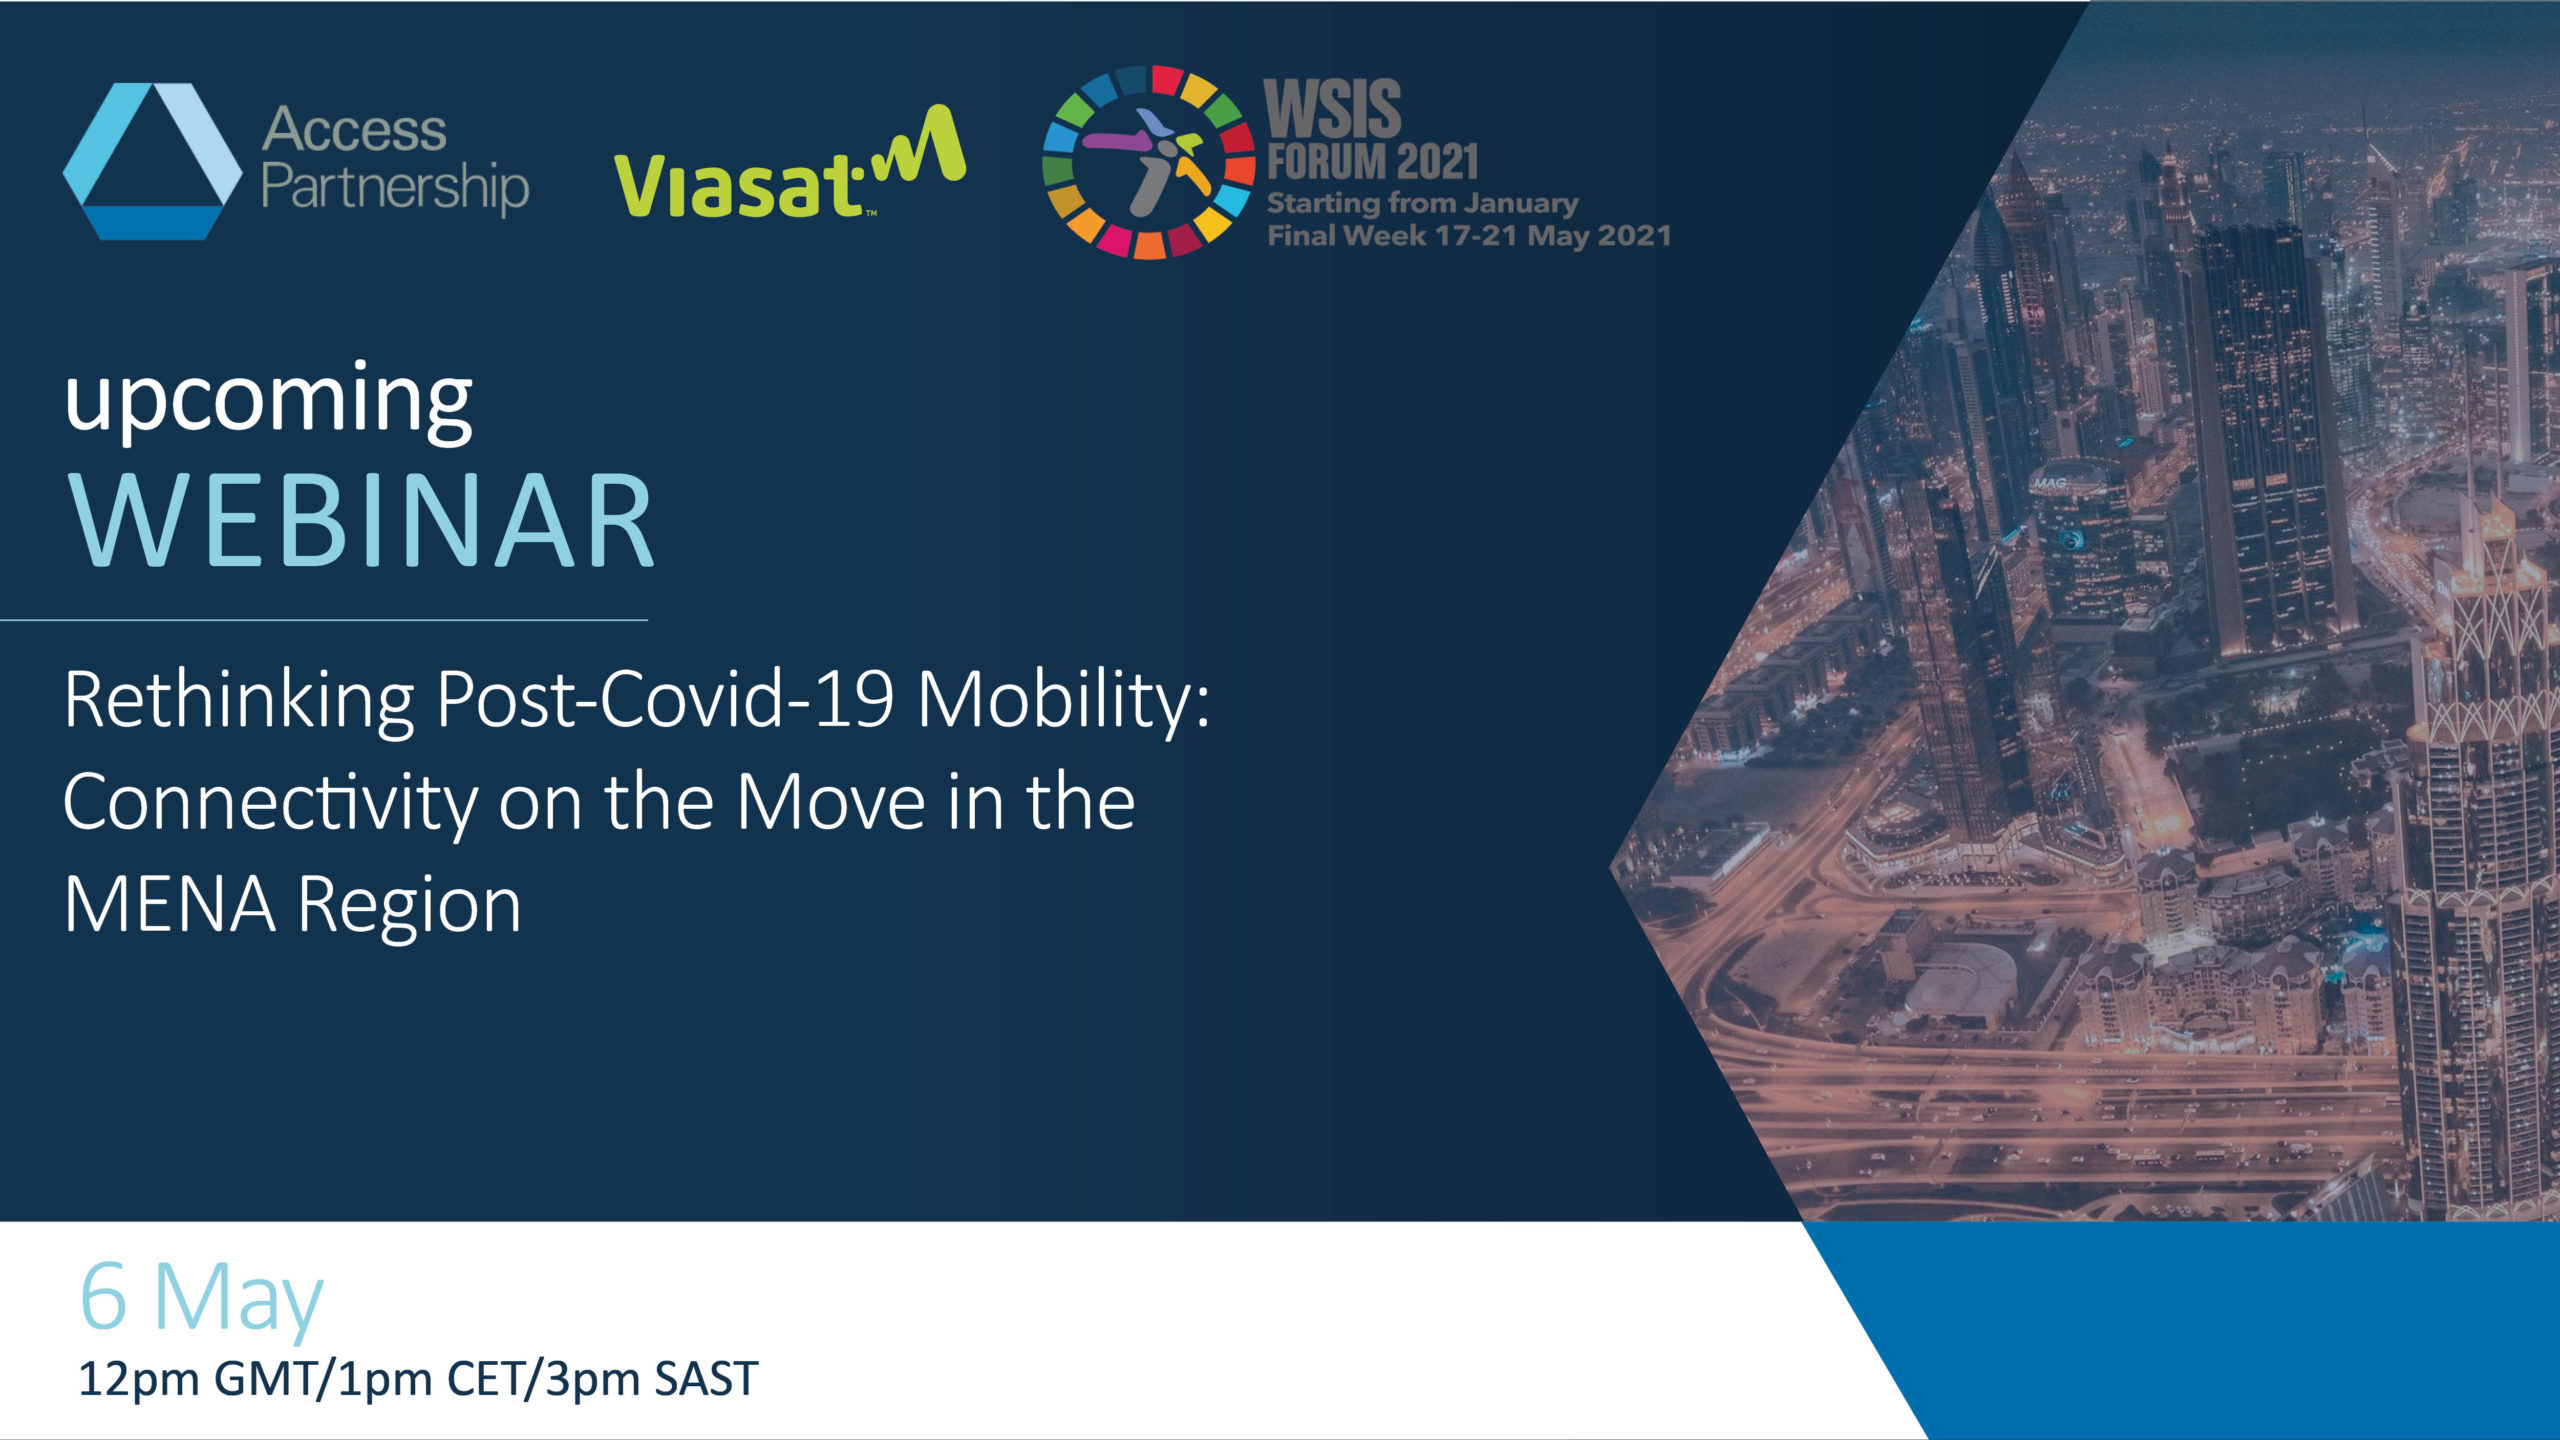 Workshop | Rethinking Post-Covid-19 Mobility: Connectivity on the Move in the MENA Region